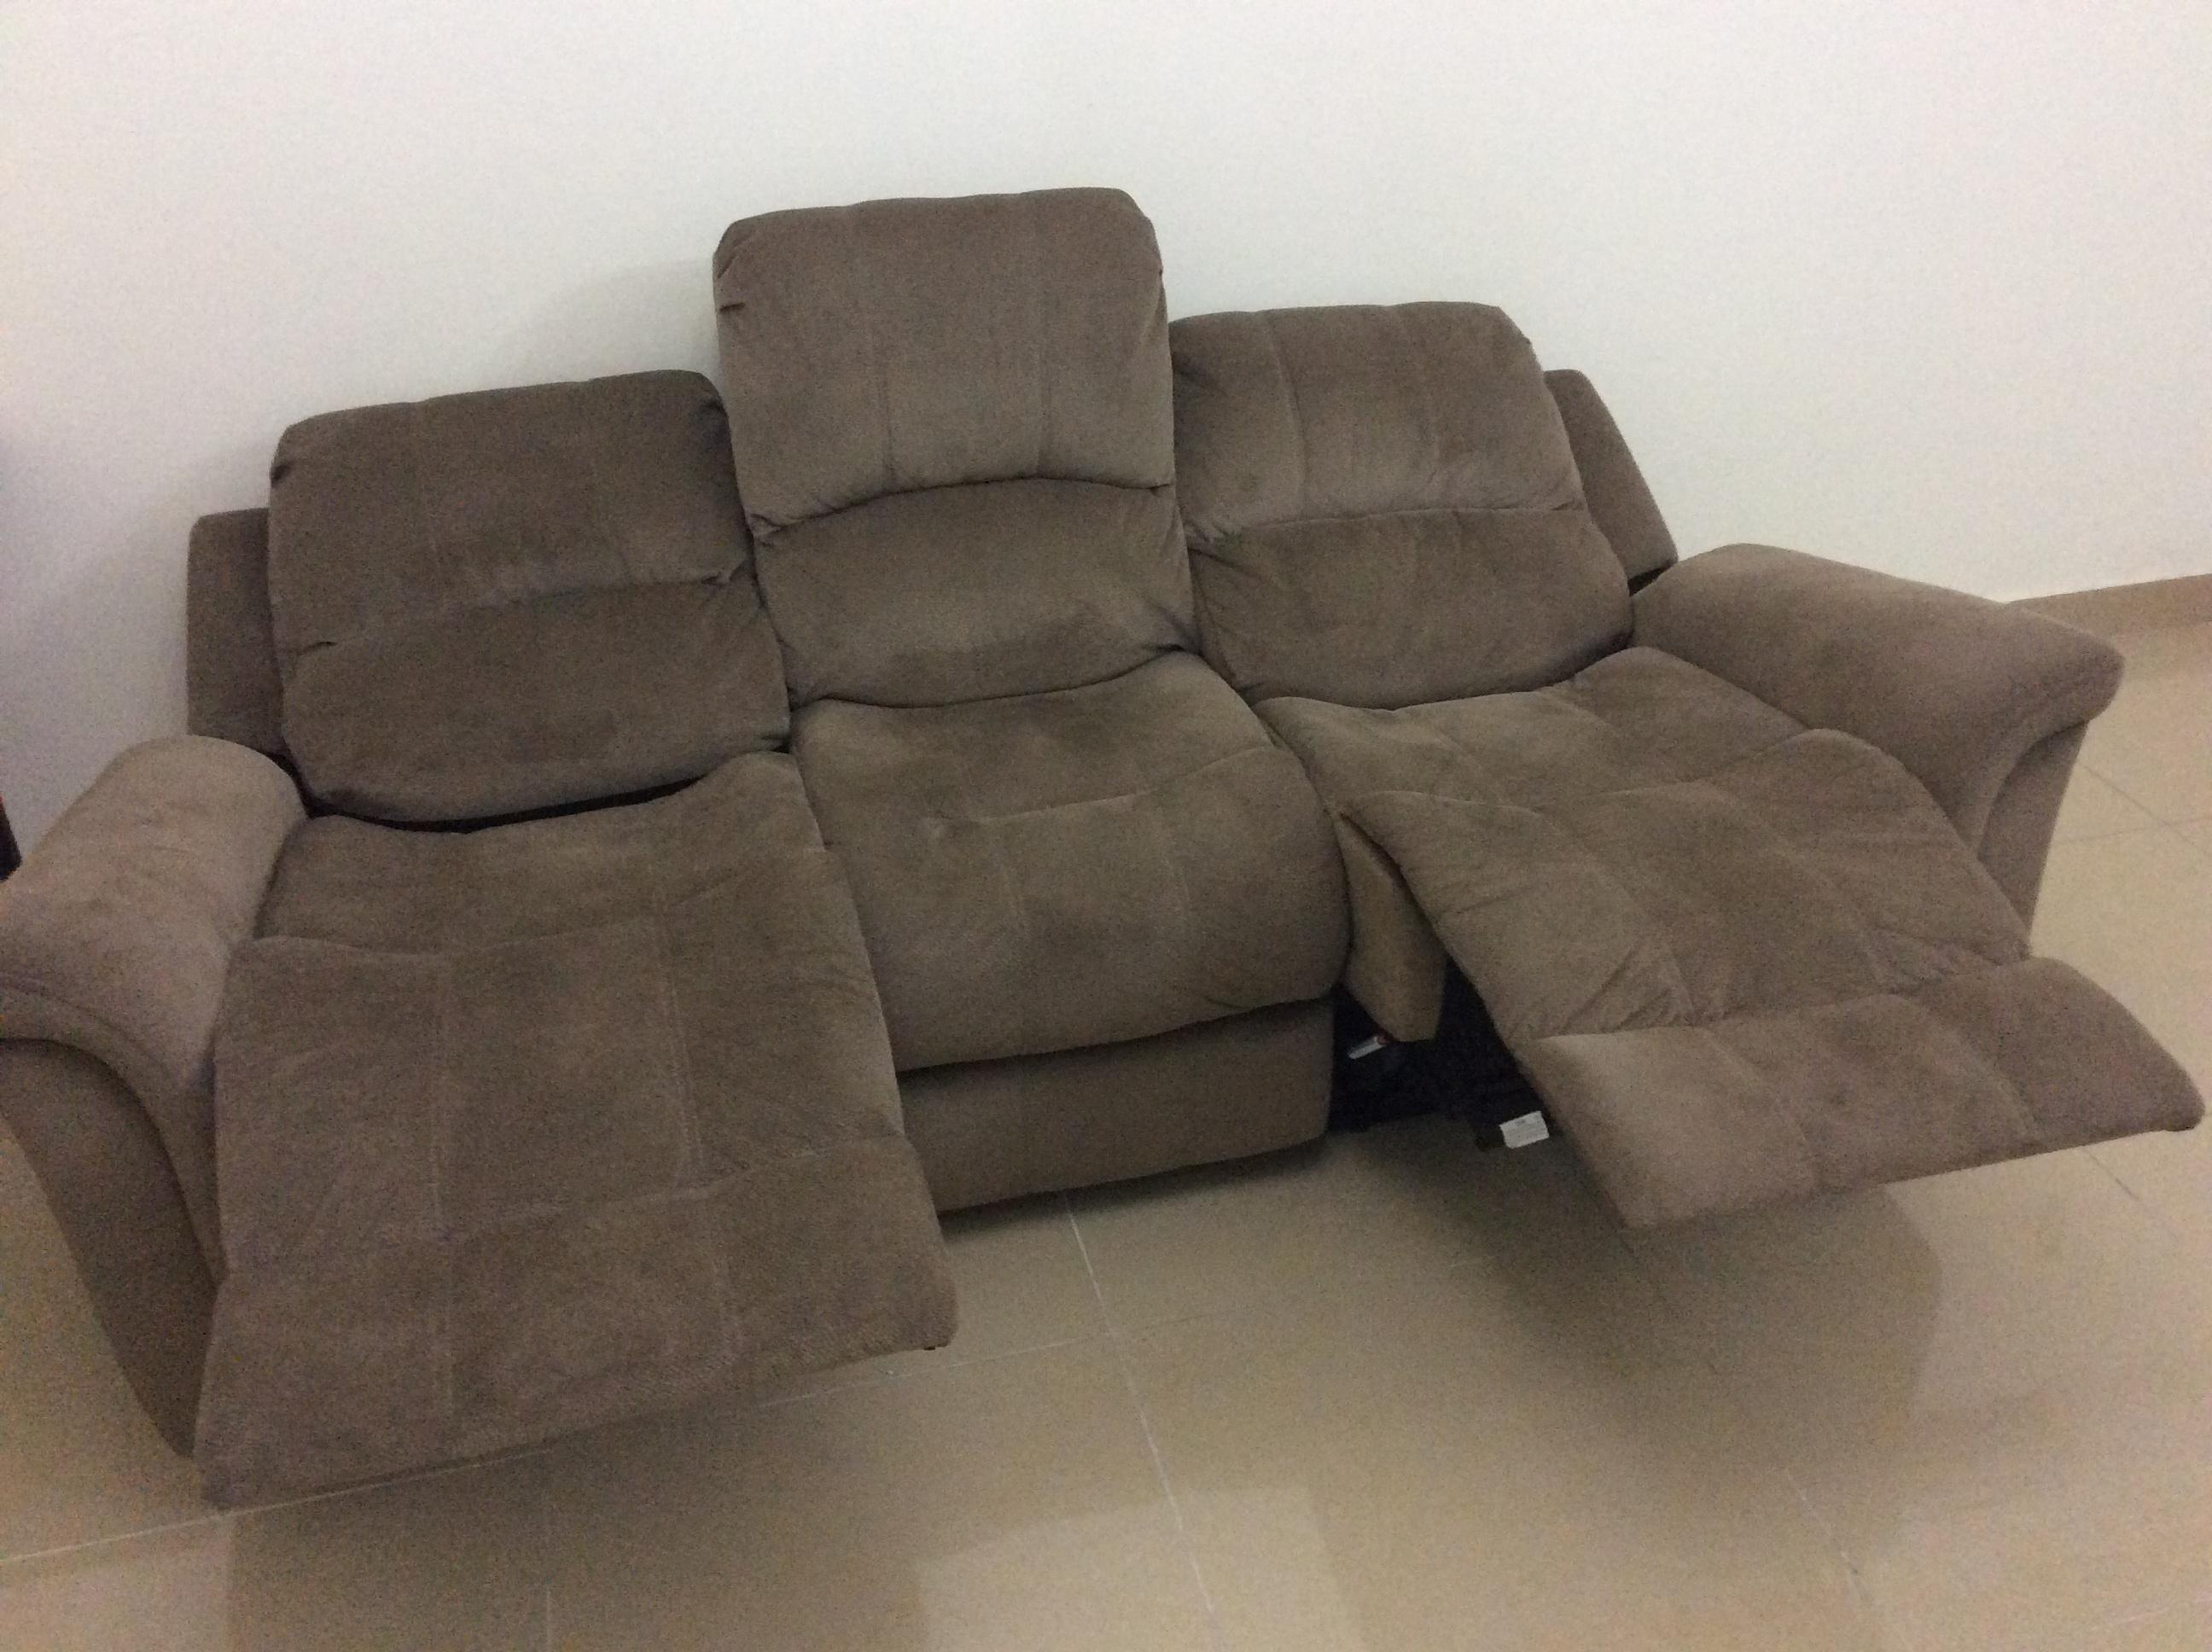 Outstanding 6 Months Old 3 Seater Sofa 2 Seats Reclining With Leg Theyellowbook Wood Chair Design Ideas Theyellowbookinfo